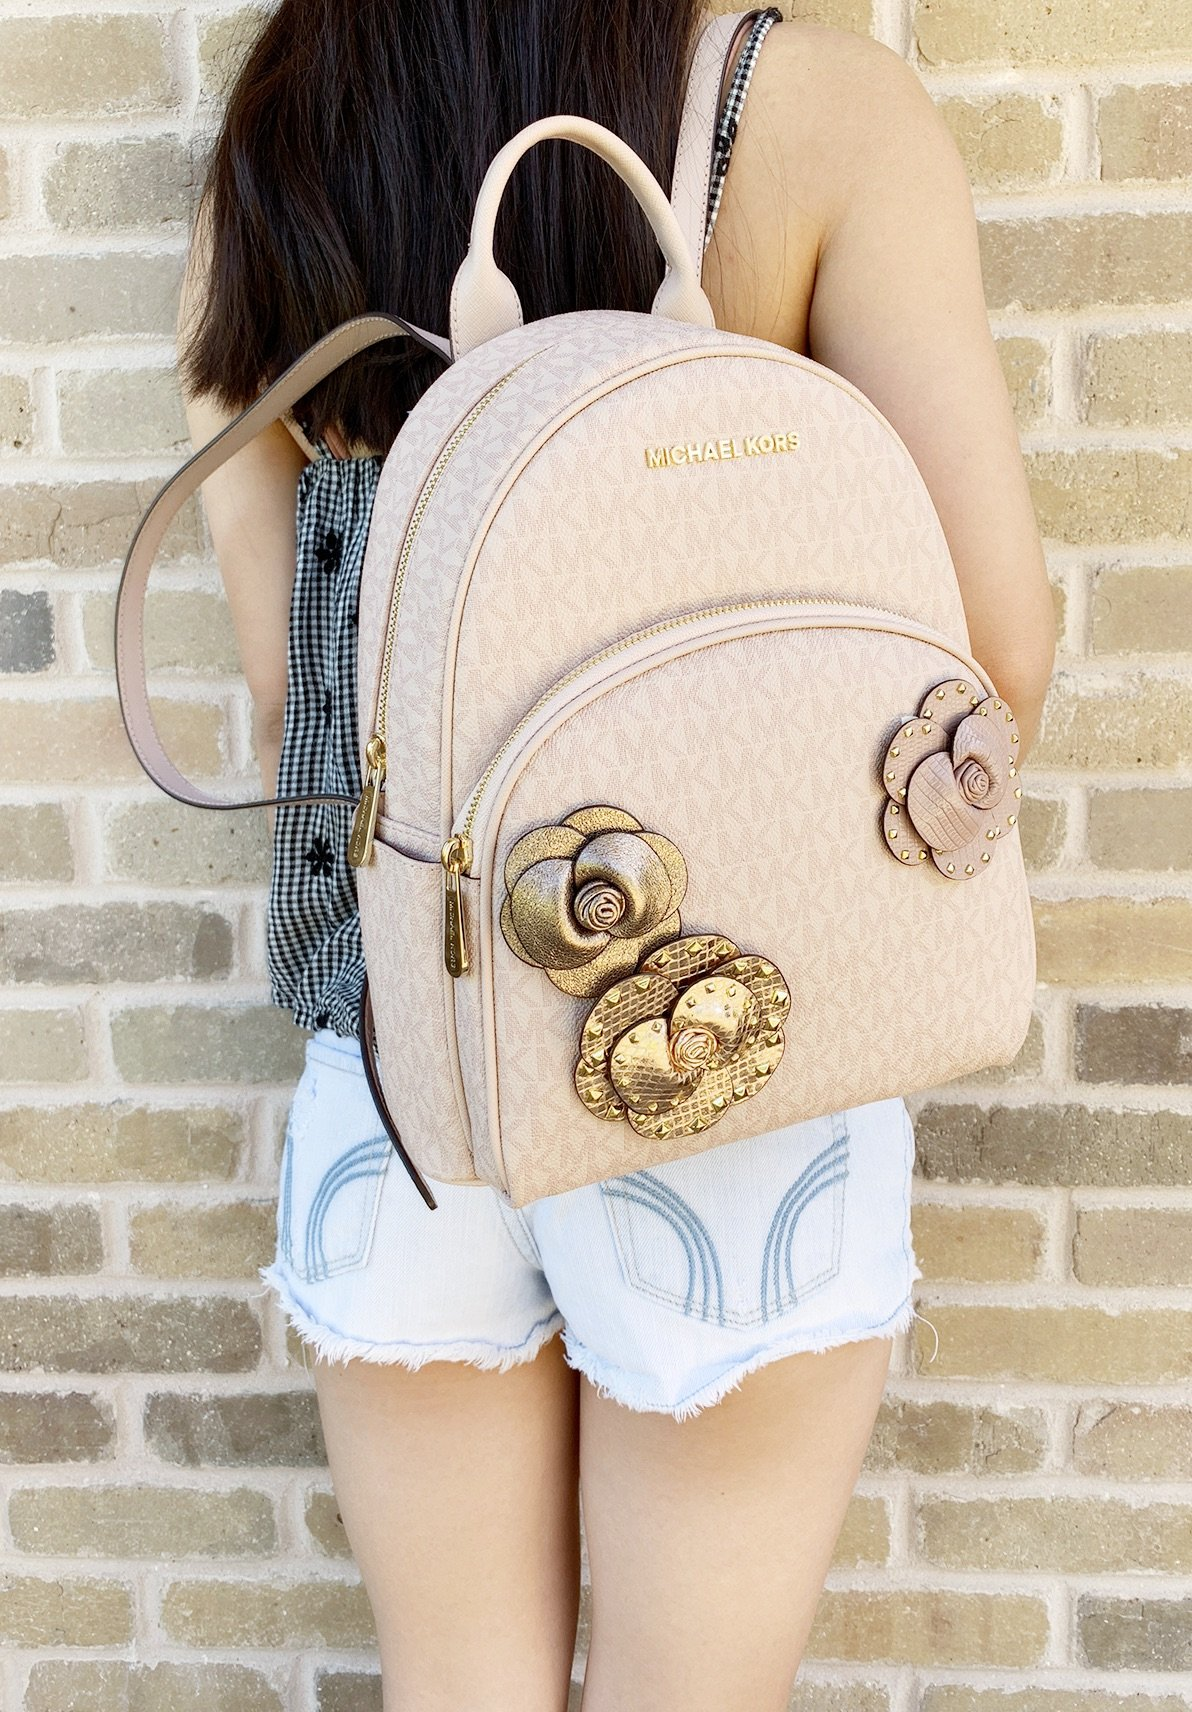 143027431bc57 Michael Kors - Michael Kors Abbey Medium Backpack Ballet Pink MK Signature  Flower School Bag - Walmart.com